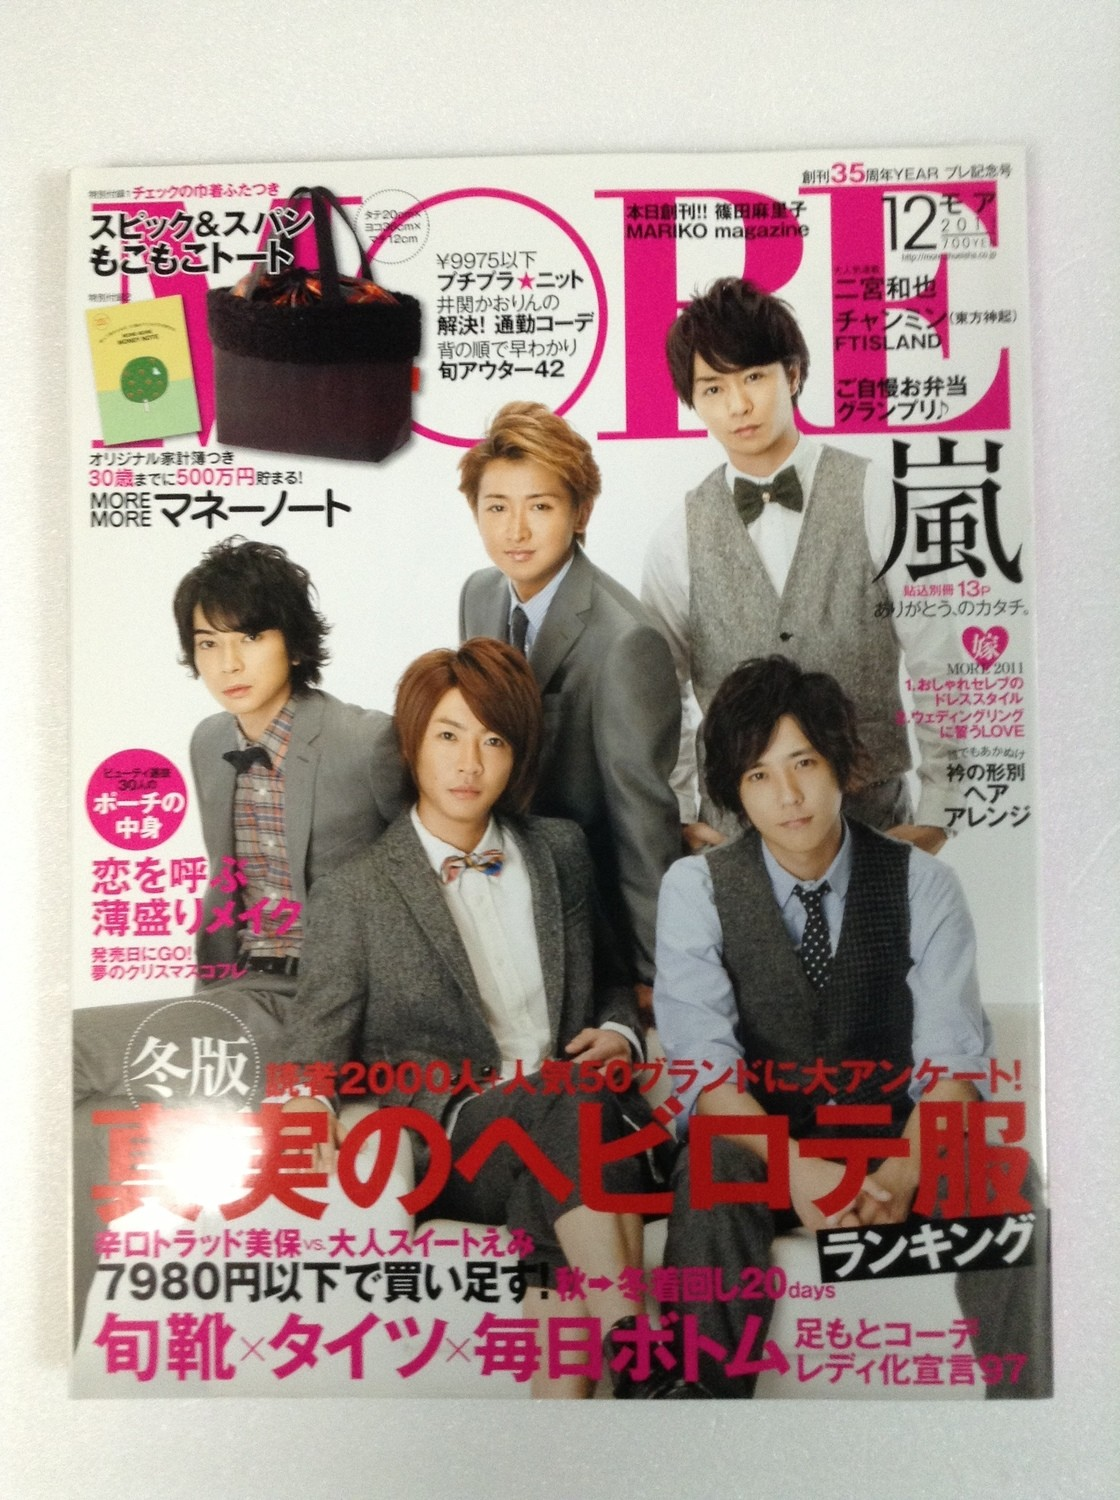 More December 2011 Magazine featuring Arashi